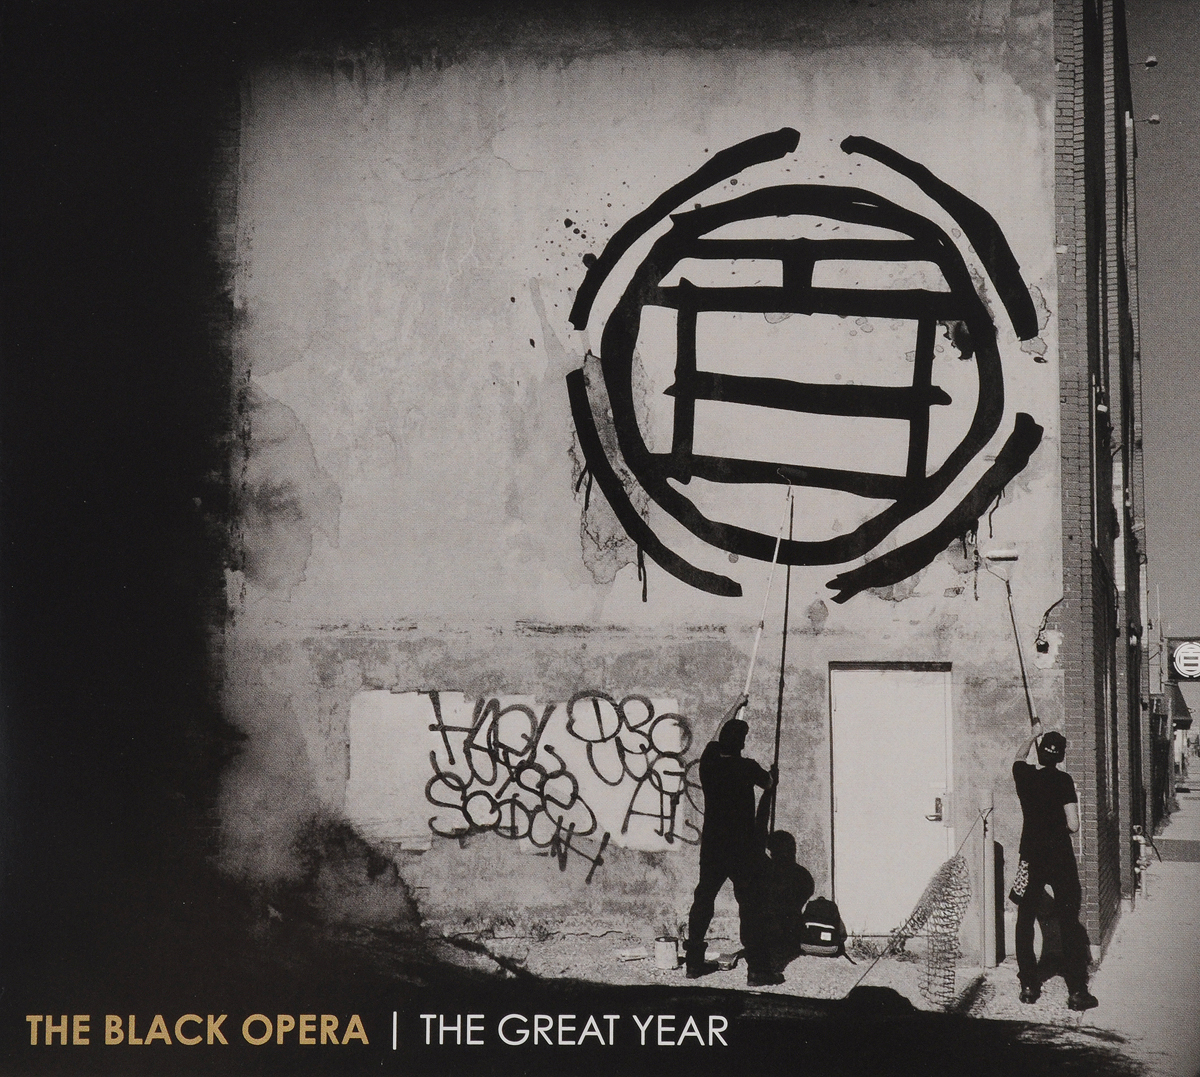 The Black Opera. The Great Year